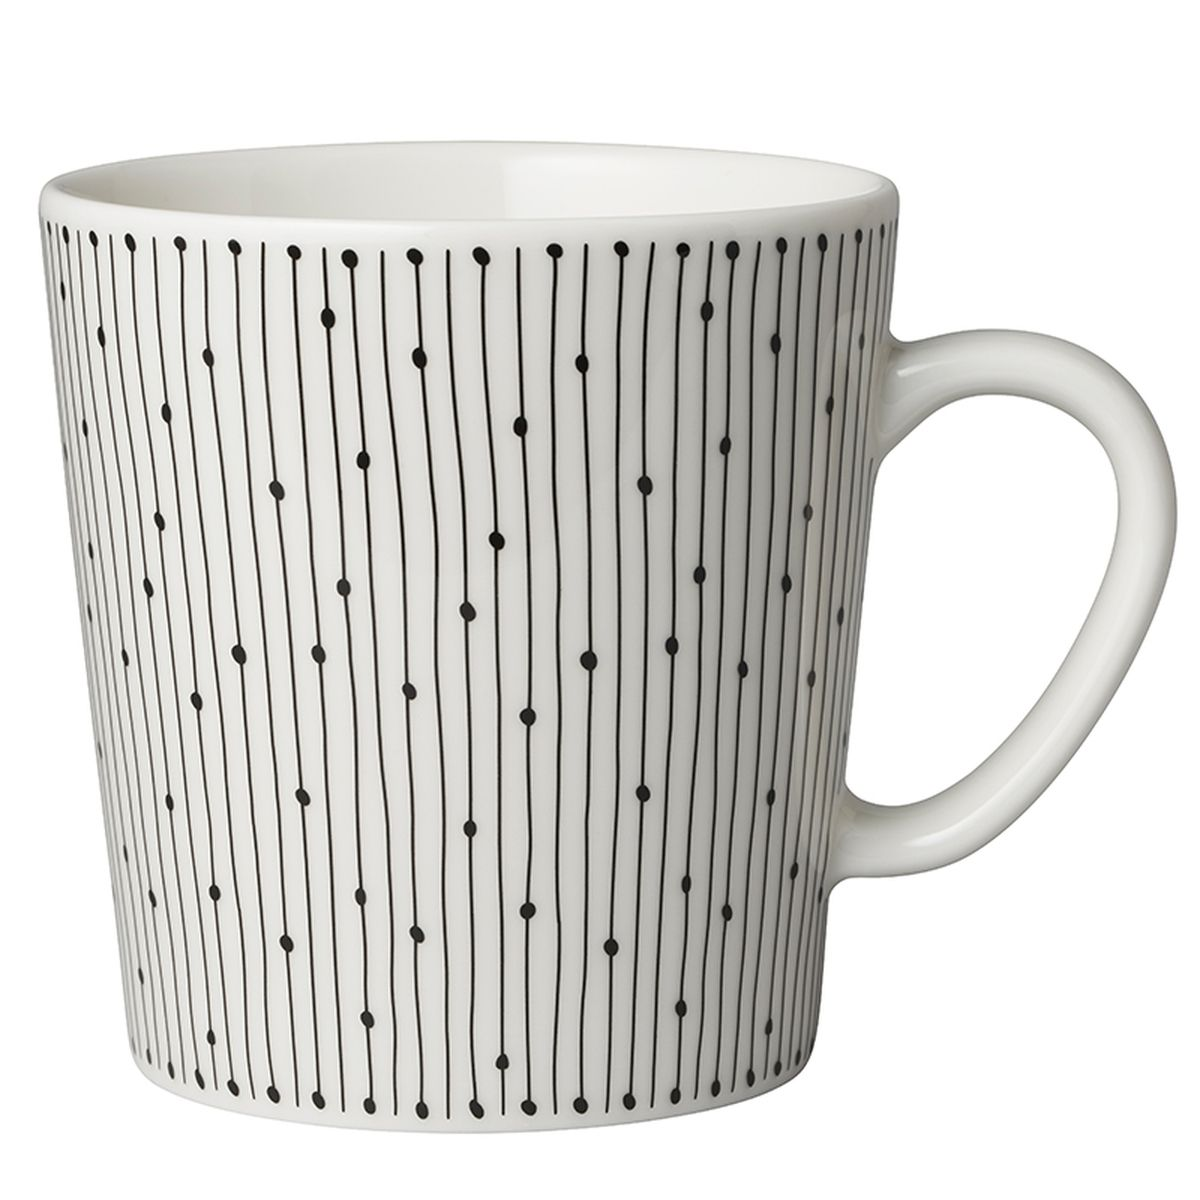 Arabia Mainio Sarastus Mug 0 3 L Tableware Tableware Design Mugs